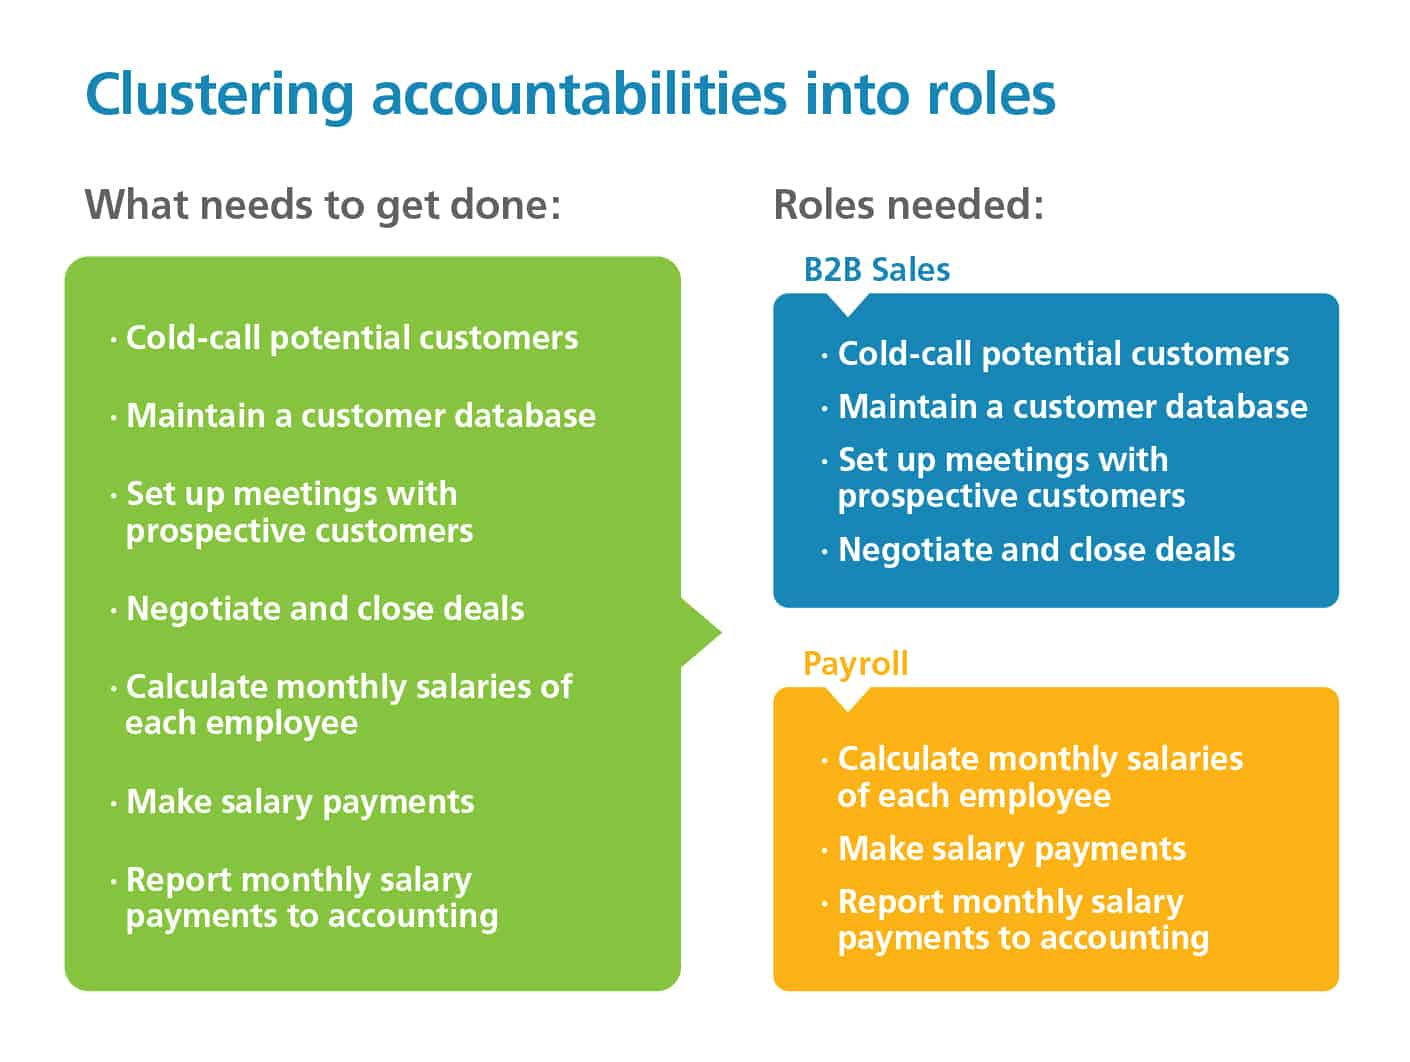 Clustering accountability into roles